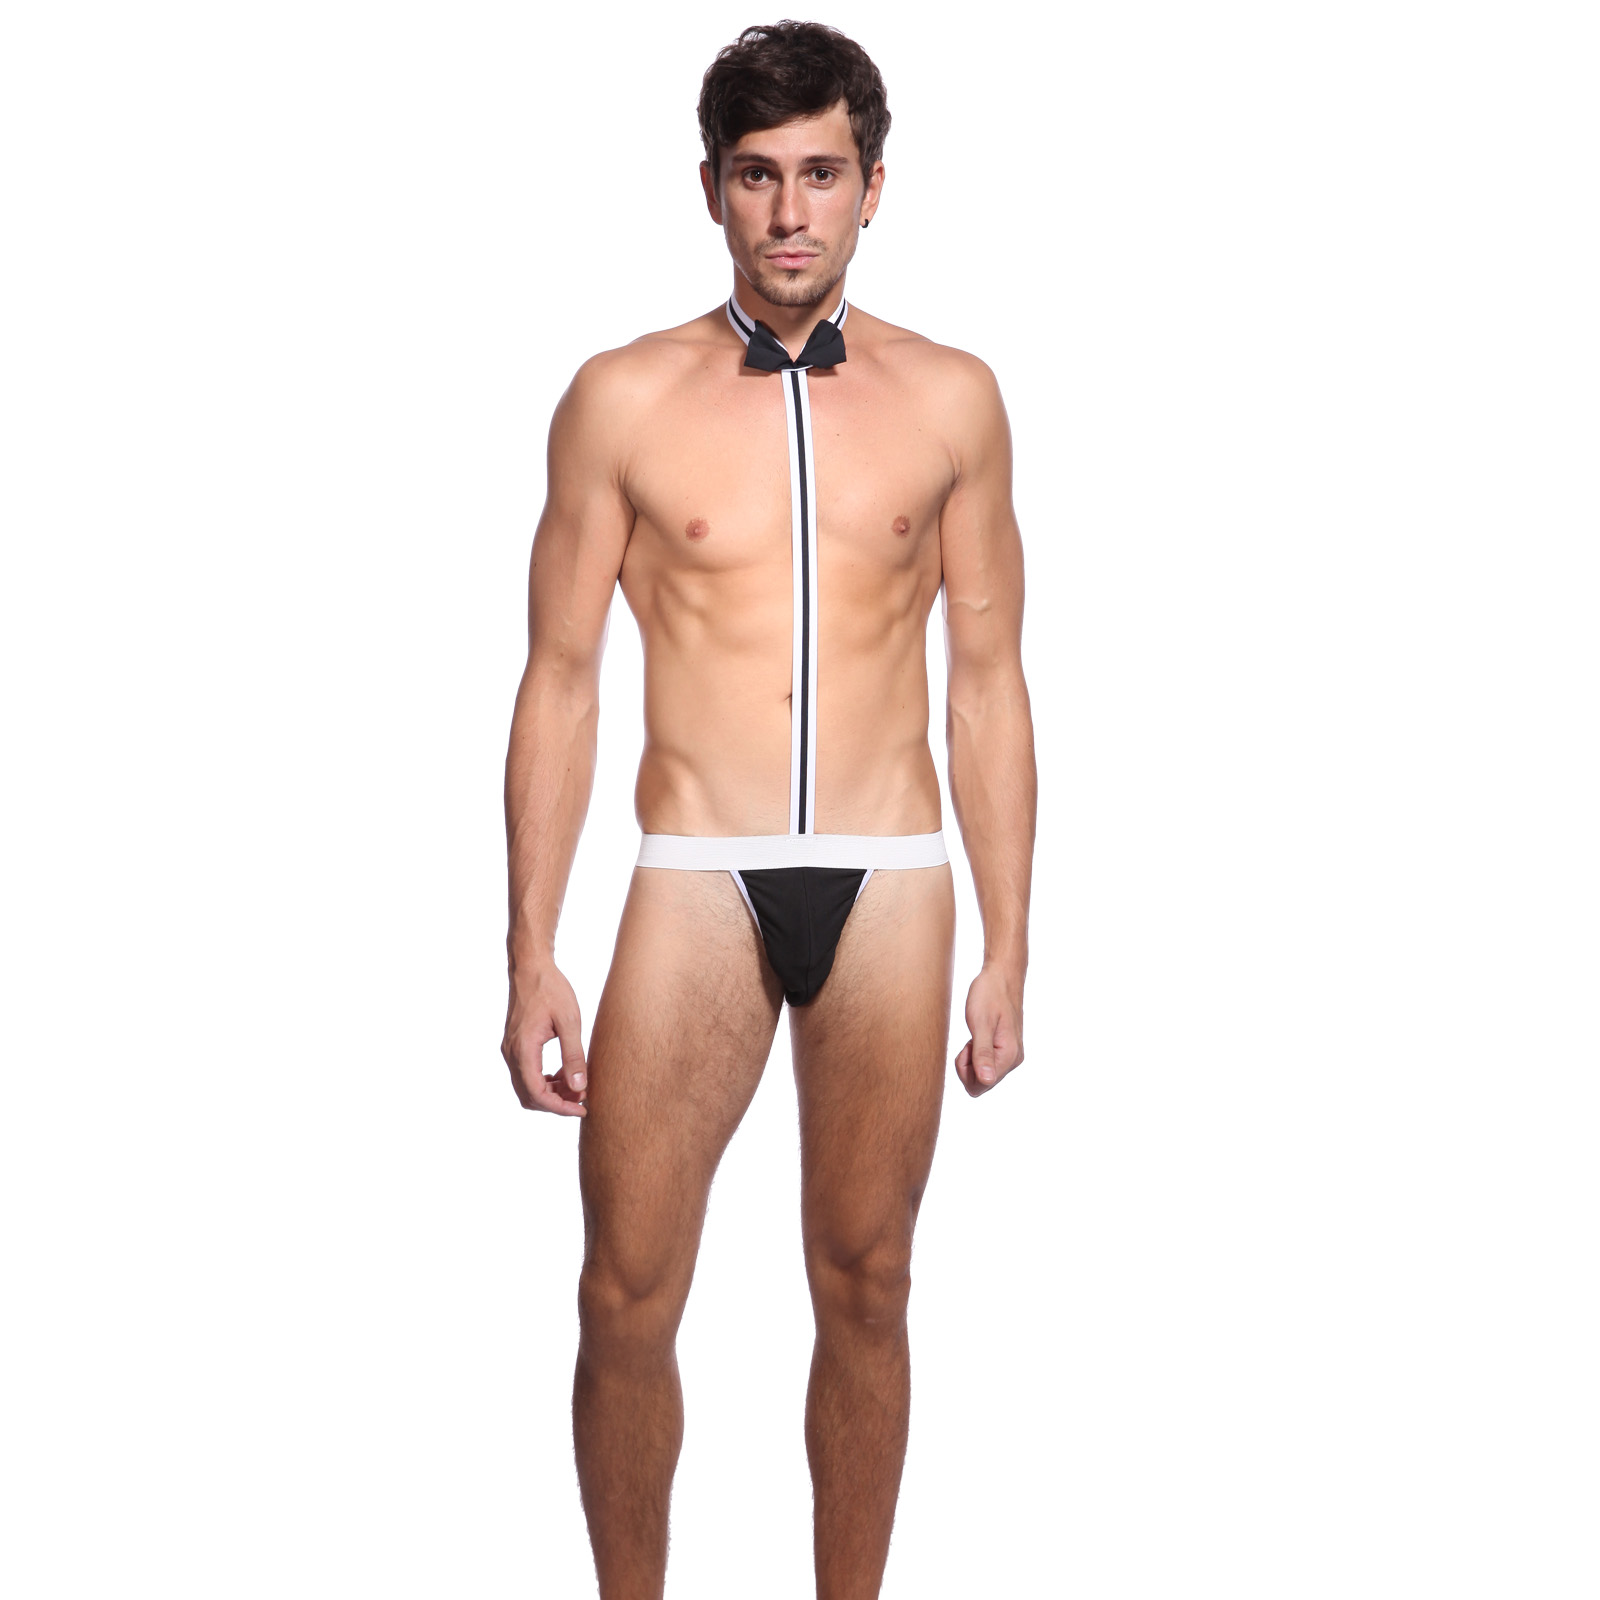 f76aae99298c1 Sexy Borat Mankini Costume Swimsuit Mens Swimwear Thong Sexy Party Wear |  eBay